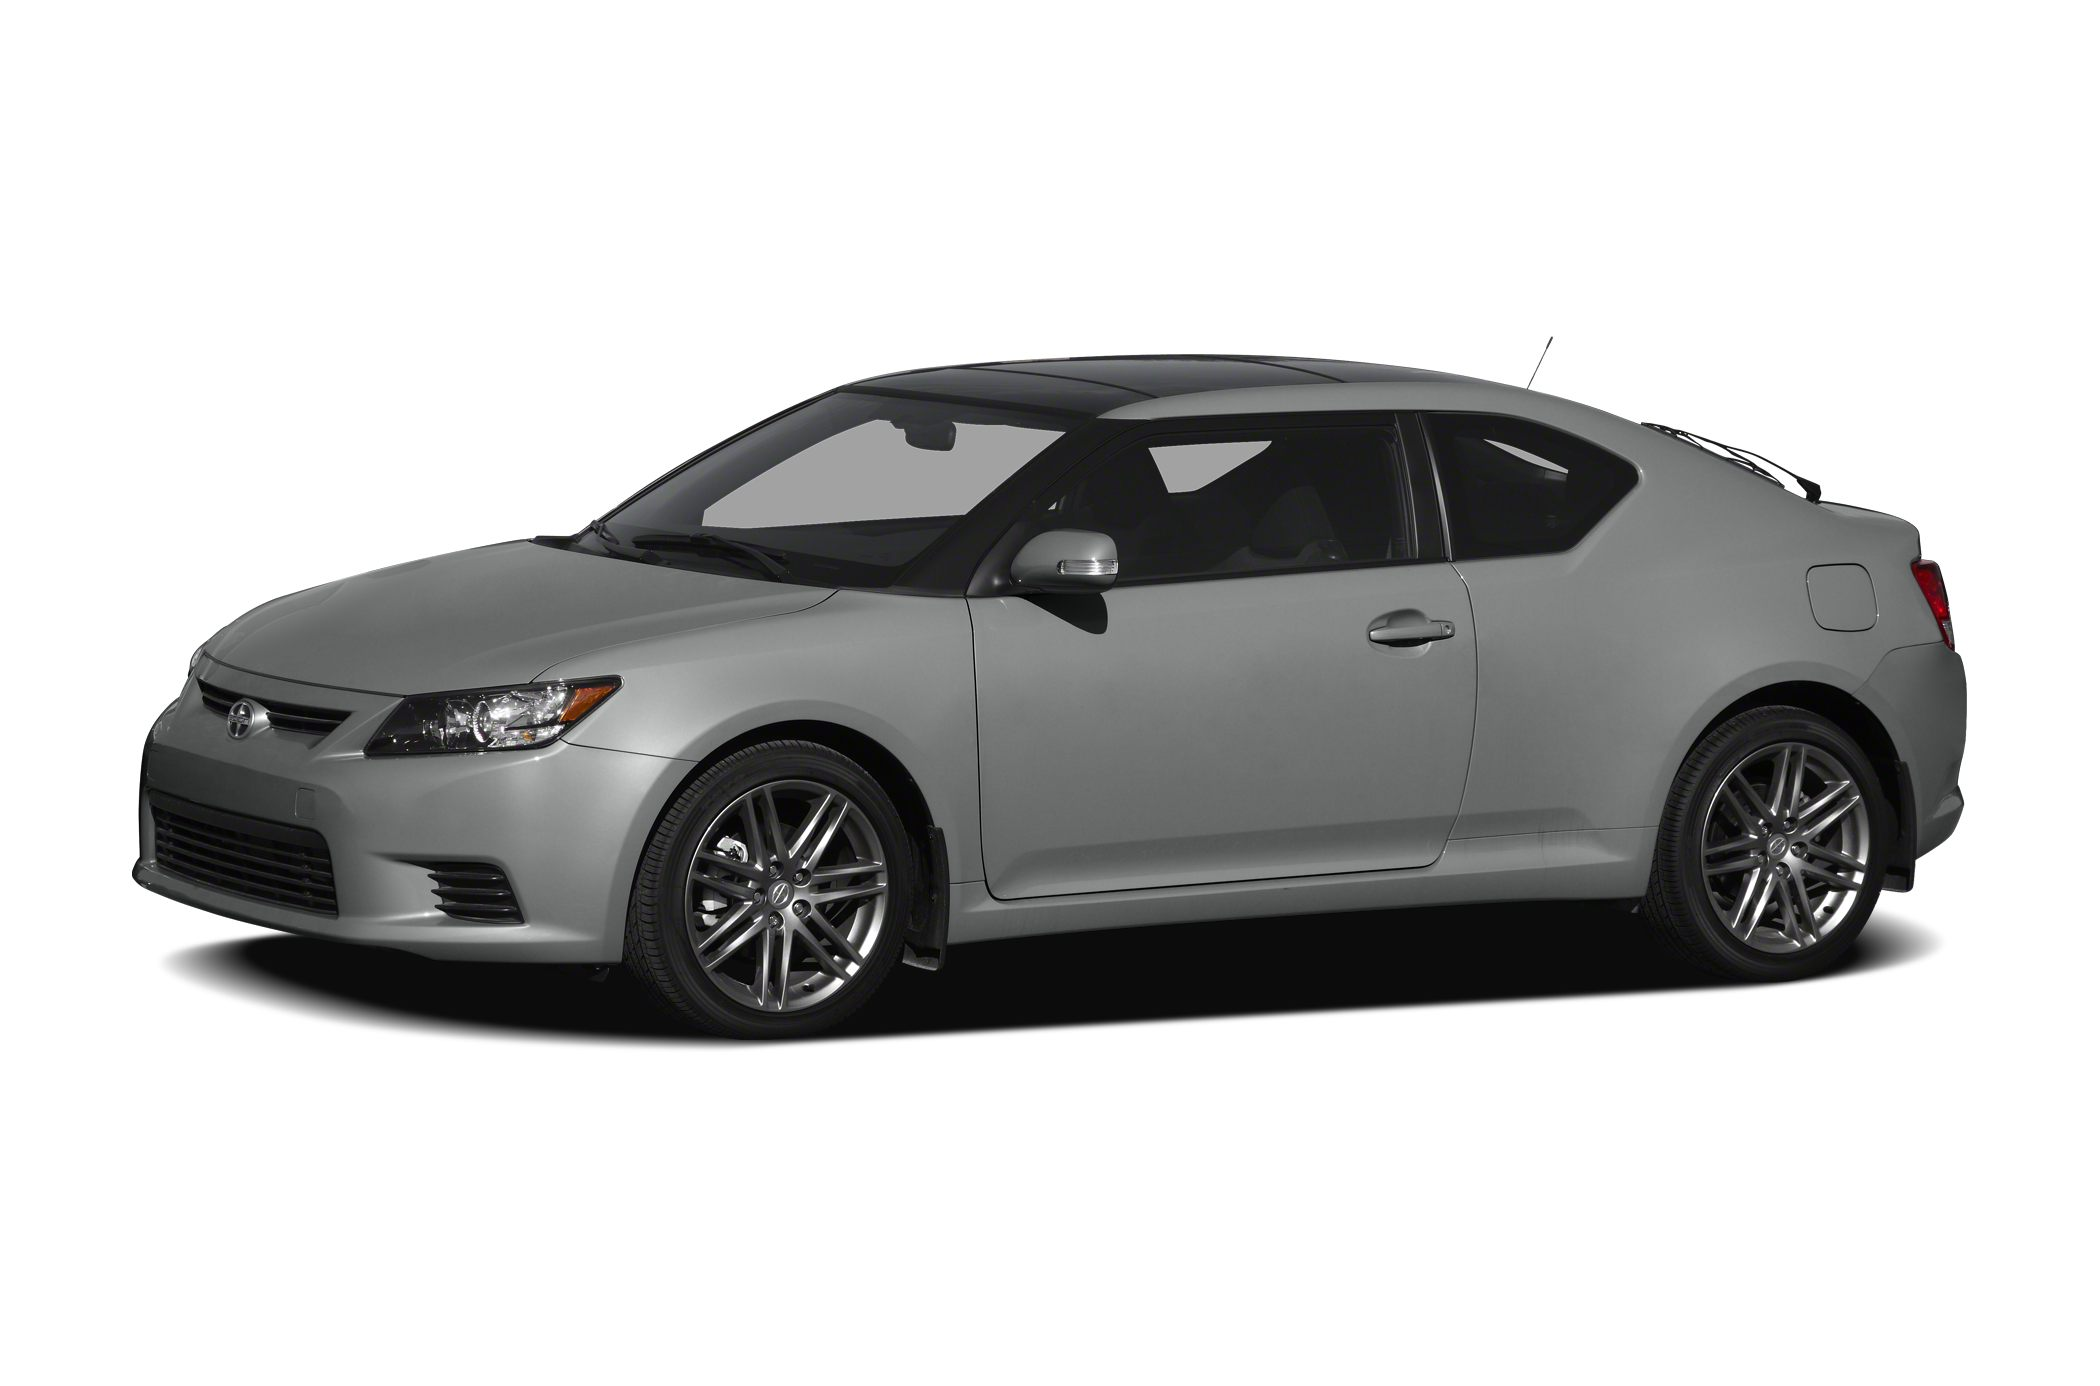 2012 Scion TC Base Coupe for sale in Lancaster for $16,998 with 66,861 miles